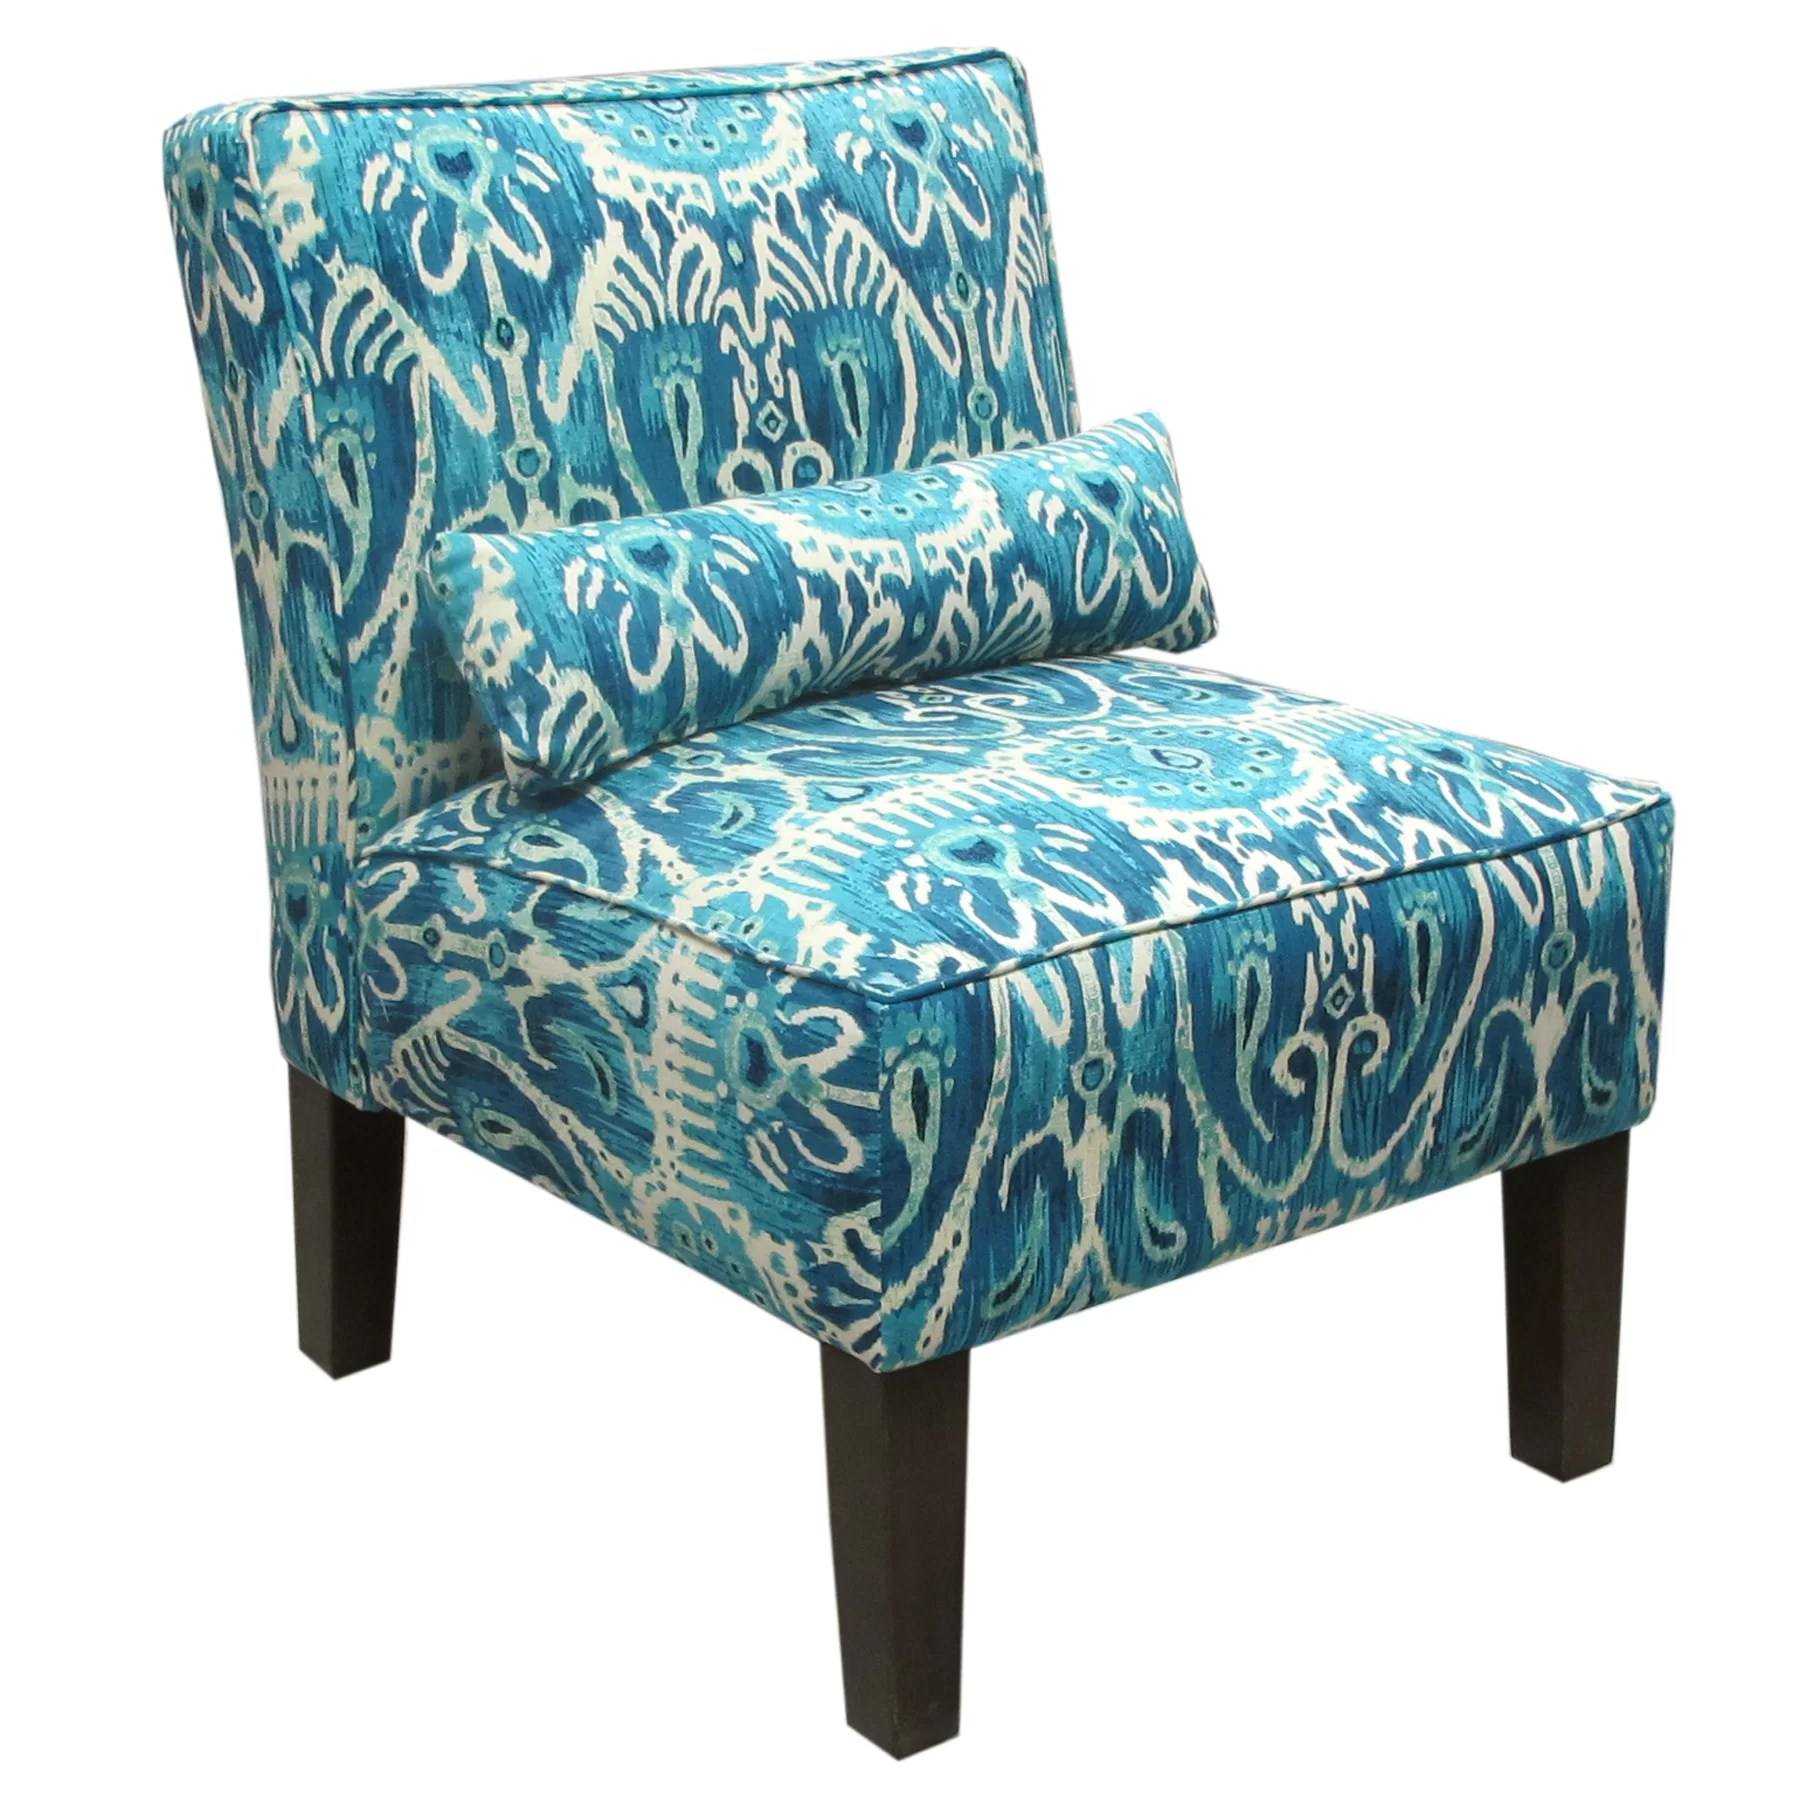 skyline furniture accent chairs small wooden chair alessandra armless slipper